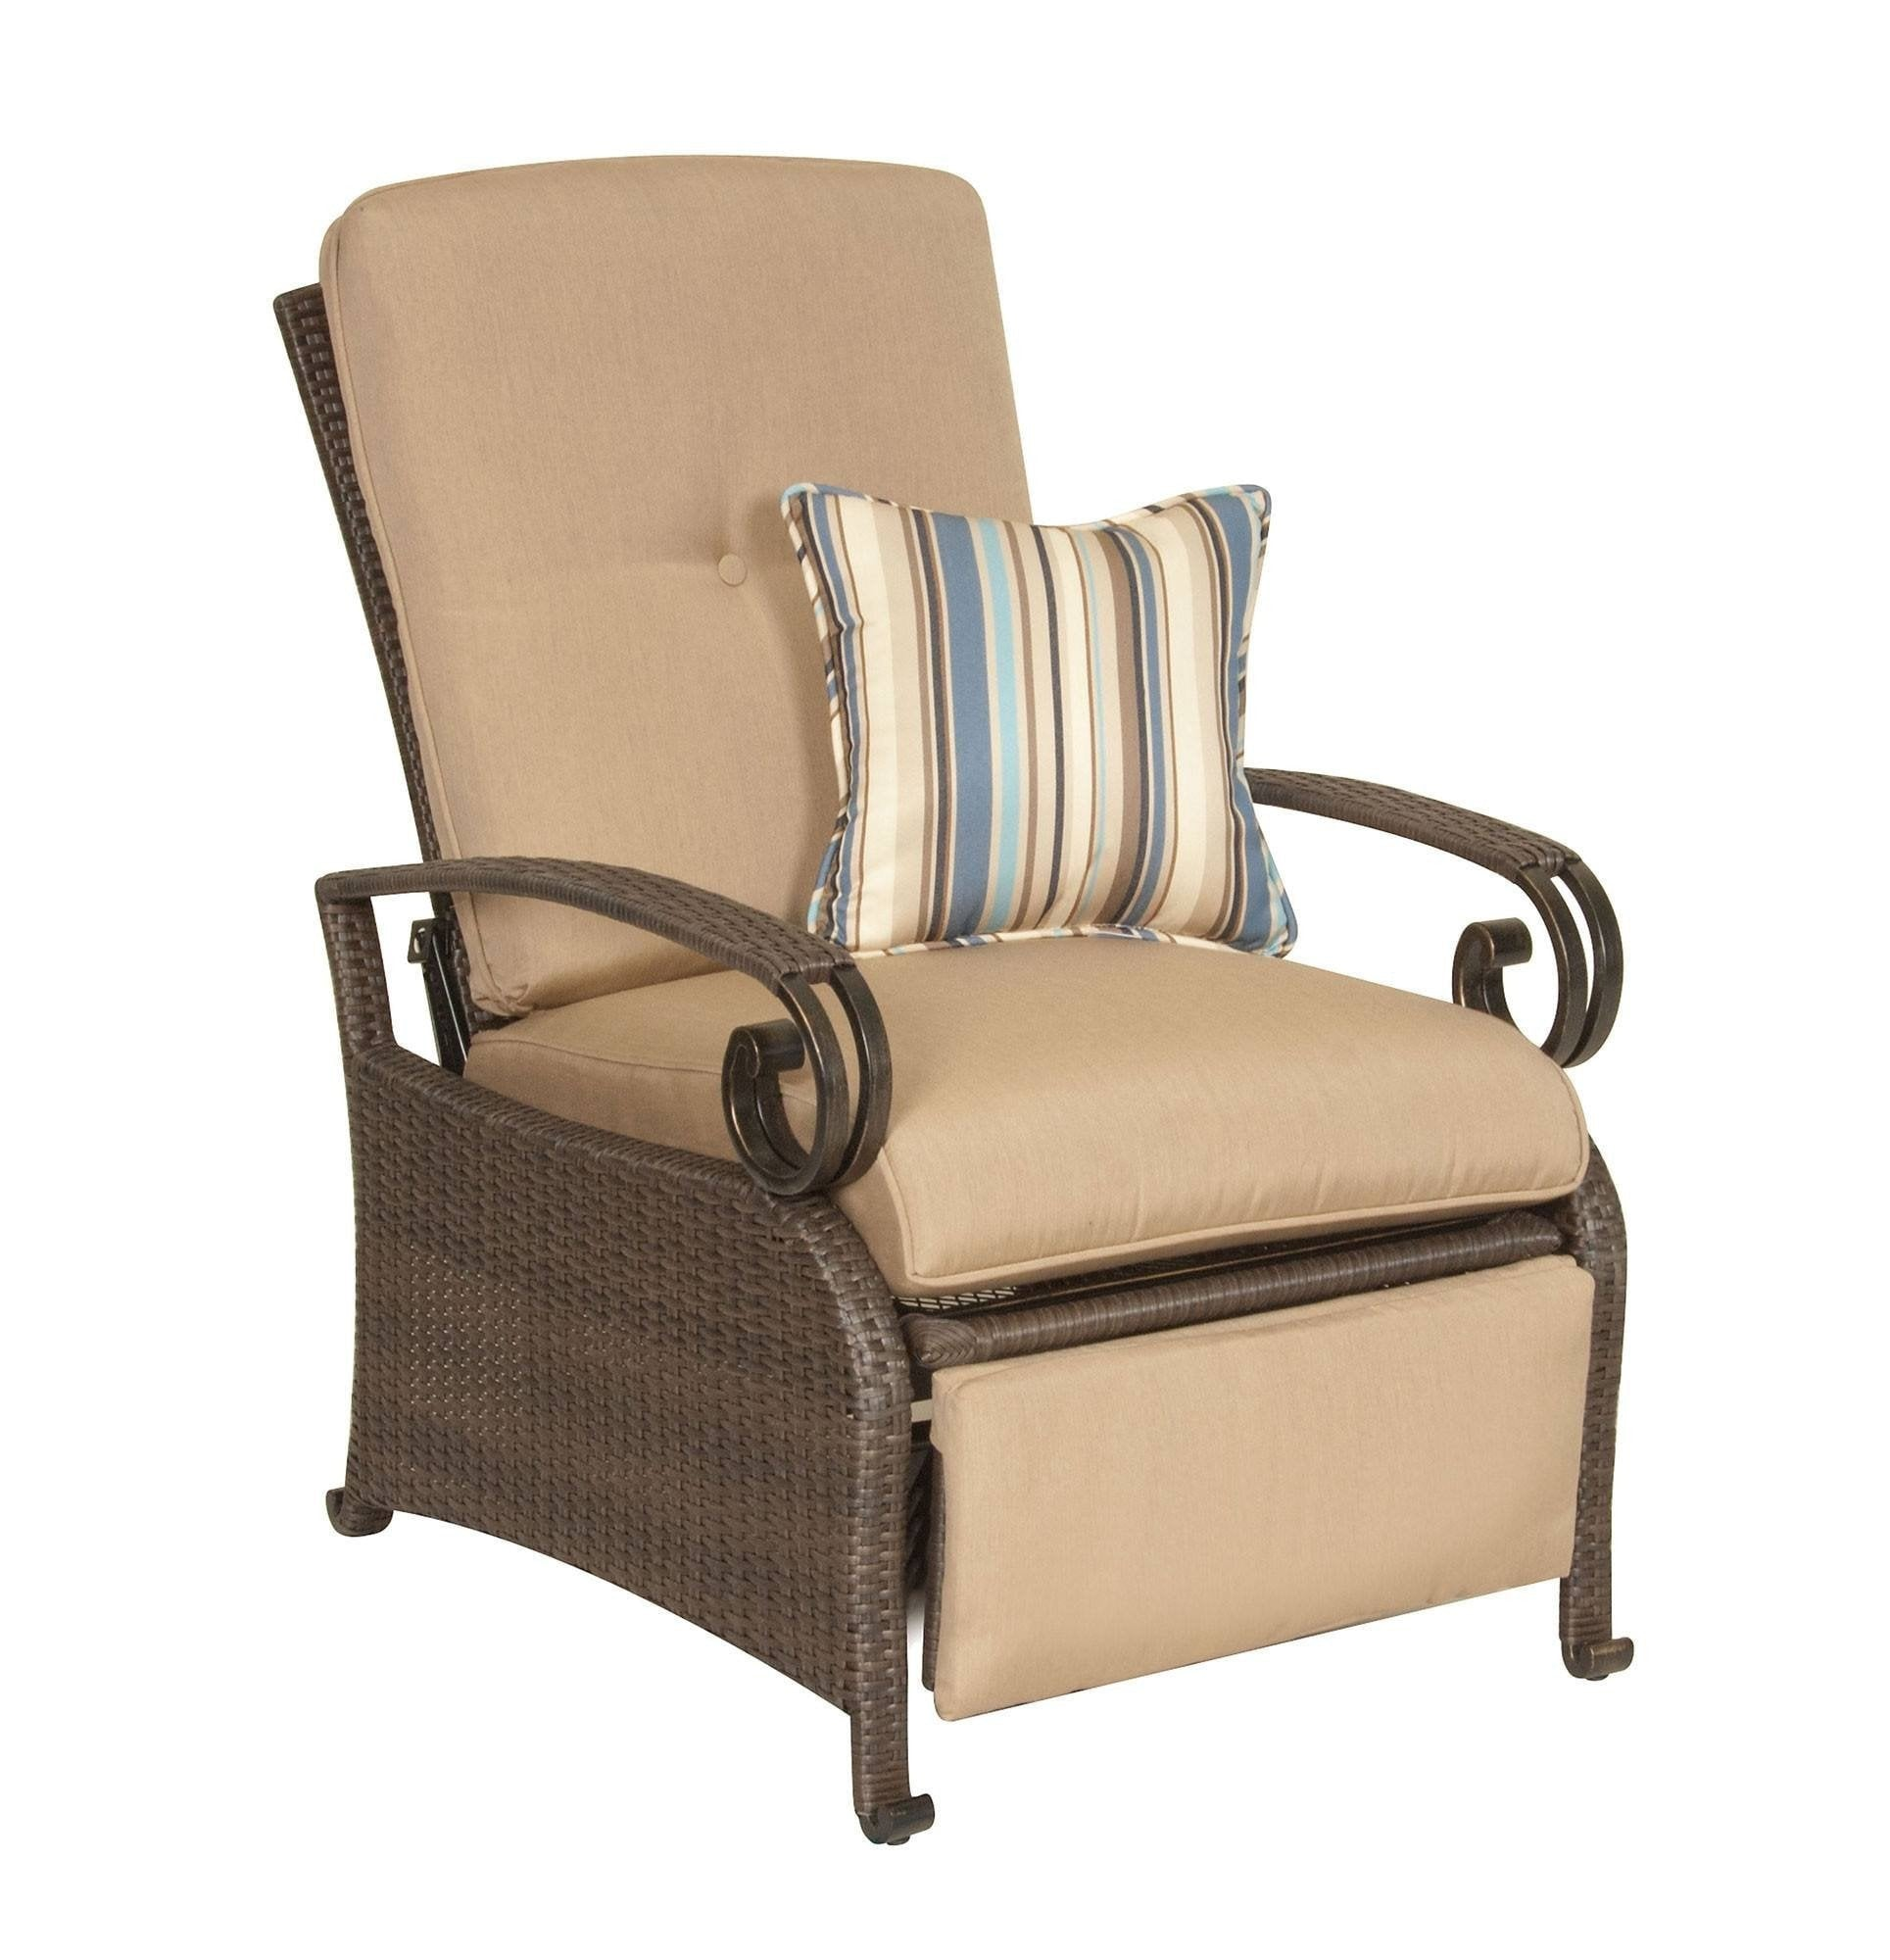 Recliner - Lake Como Patio Recliner (Khaki Tan)  sc 1 st  La-Z-Boy Outdoor : lazy boy patio recliners - islam-shia.org